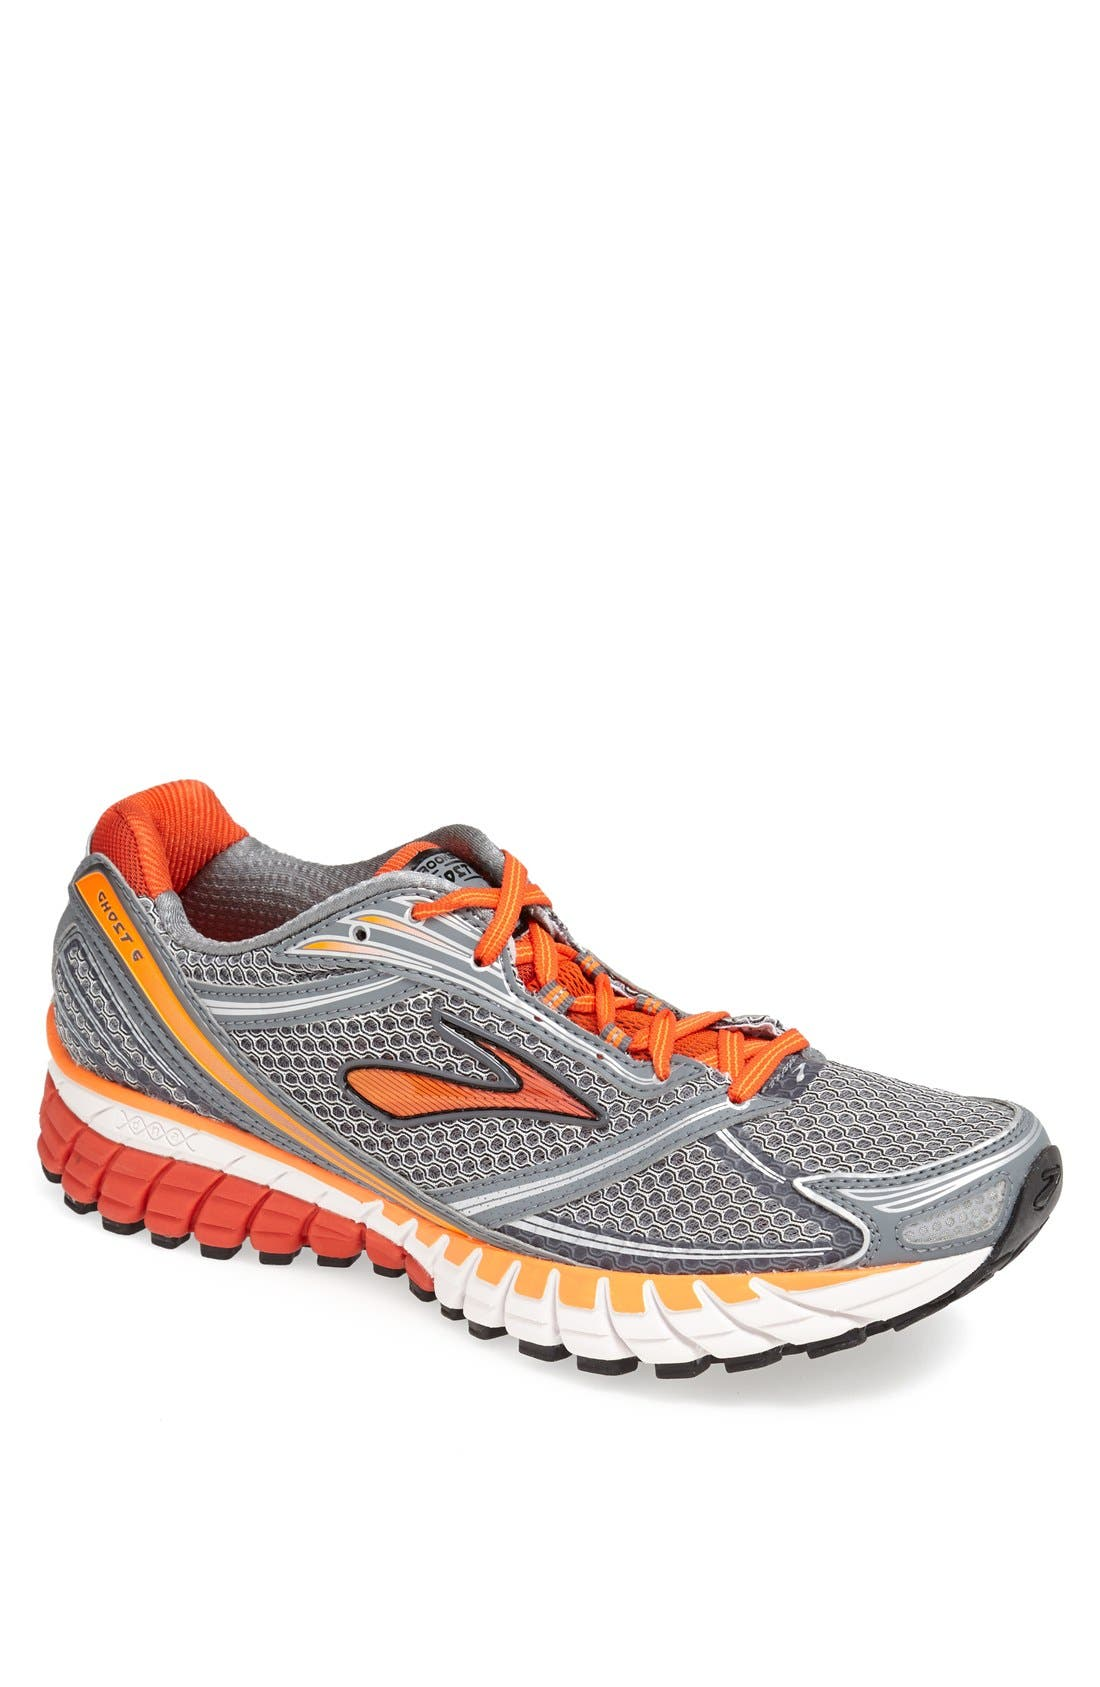 Alternate Image 1 Selected - Brooks 'Ghost 6' Running Shoe (Men) (Regular Retail Price: $109.95)